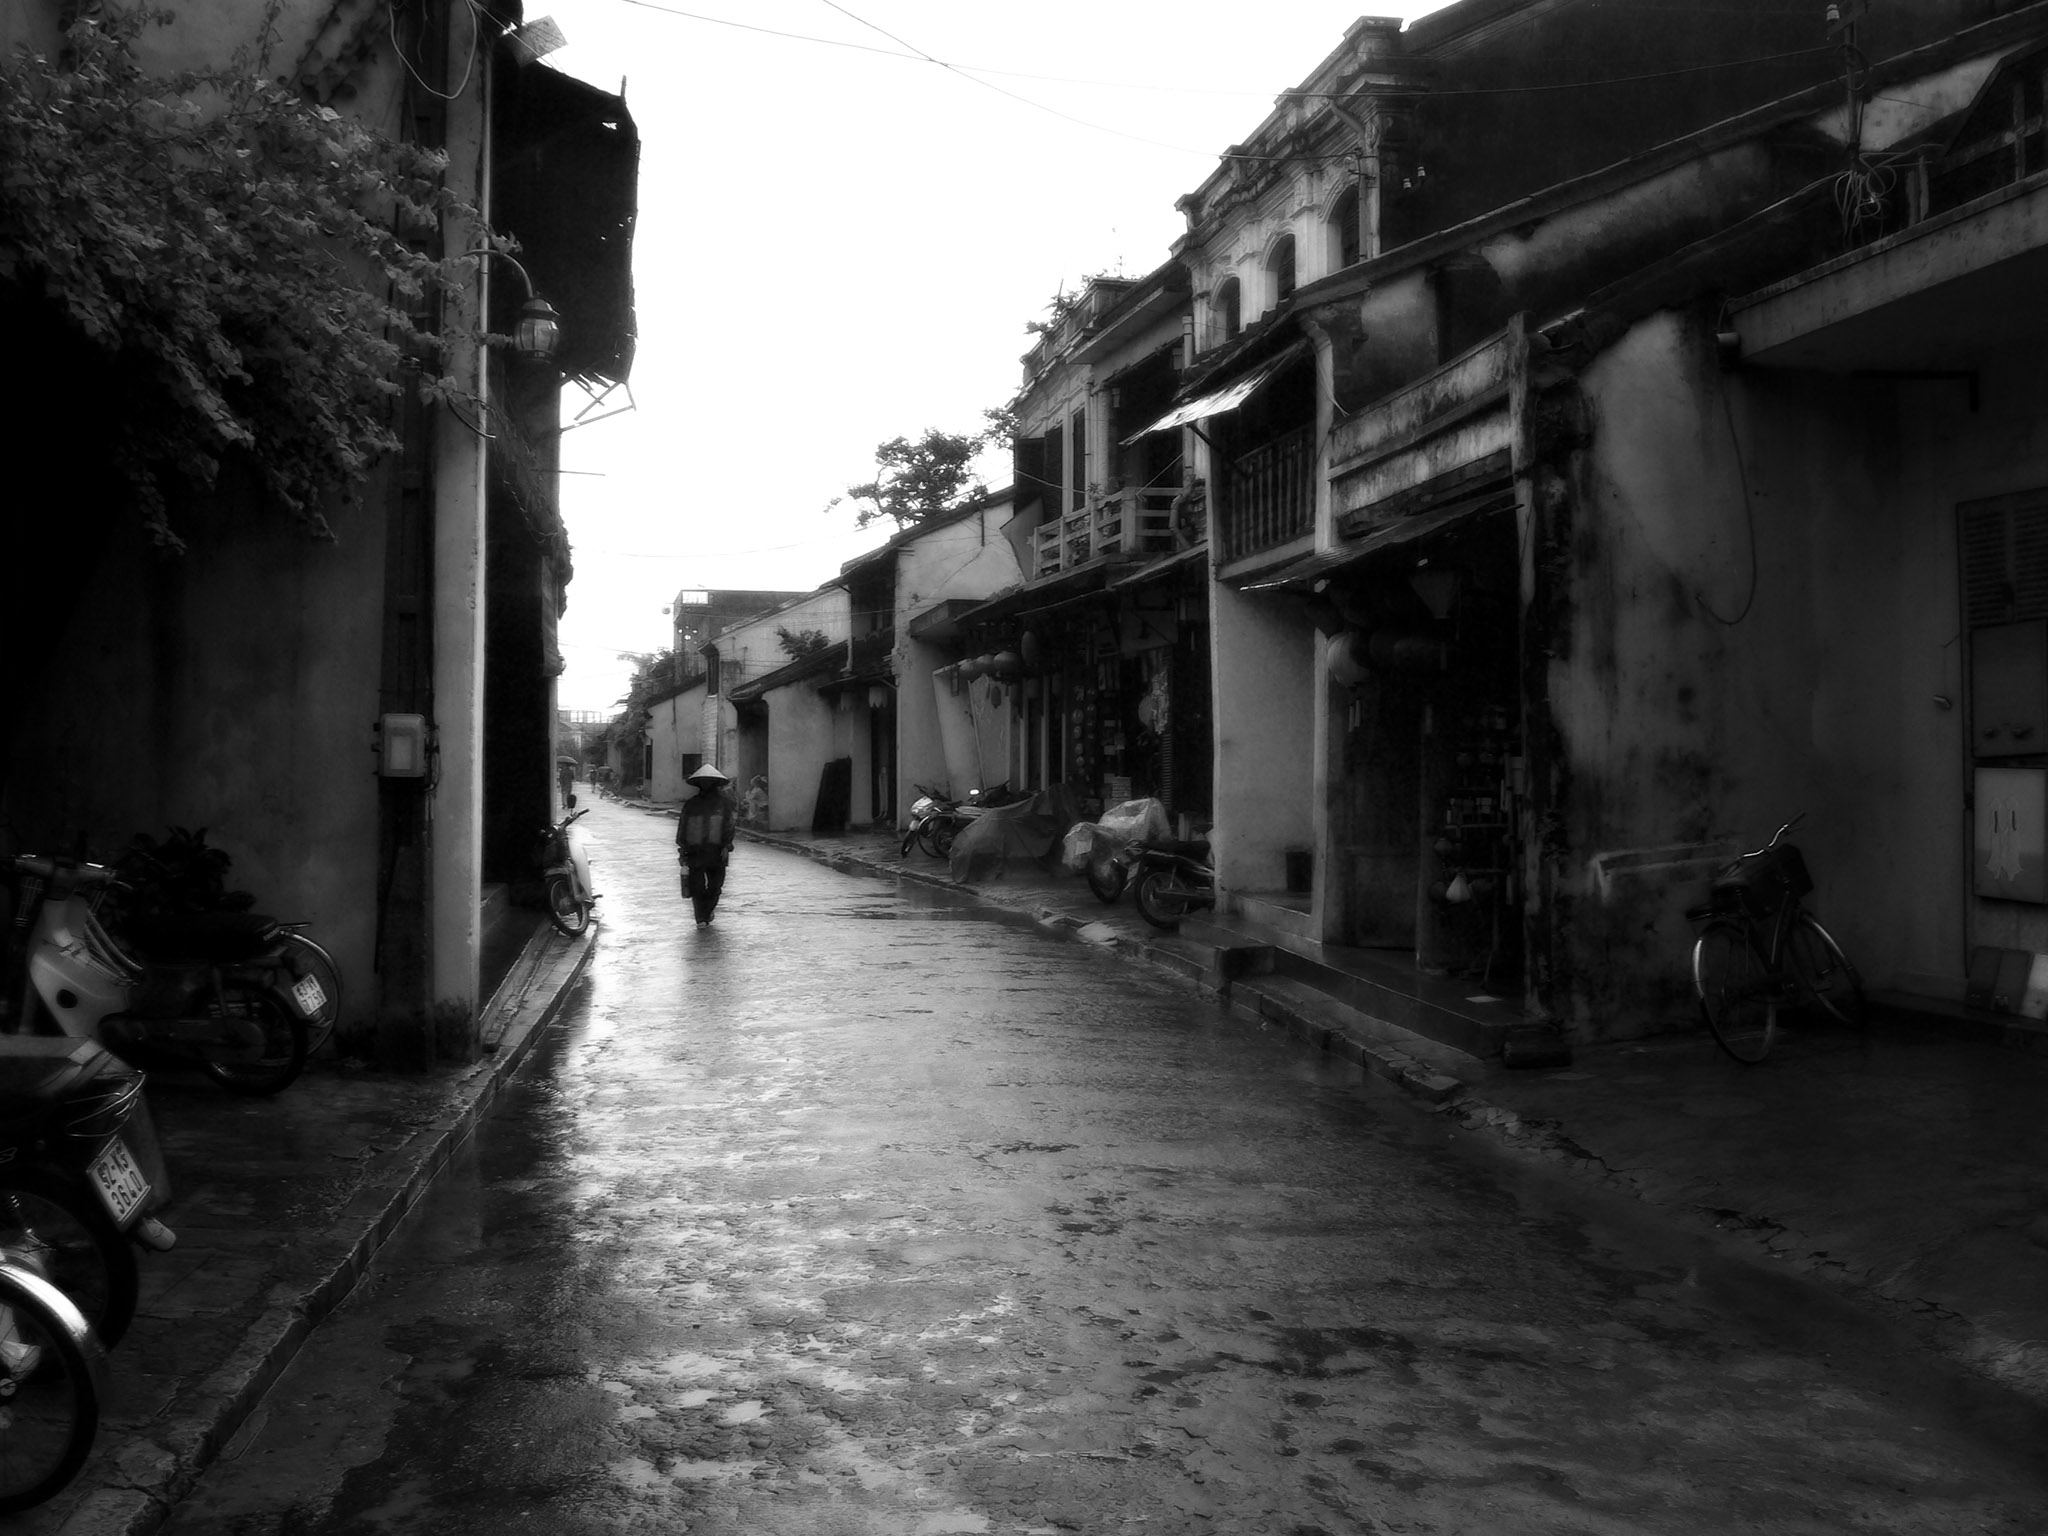 A wet day in Hoi An, Vietnam